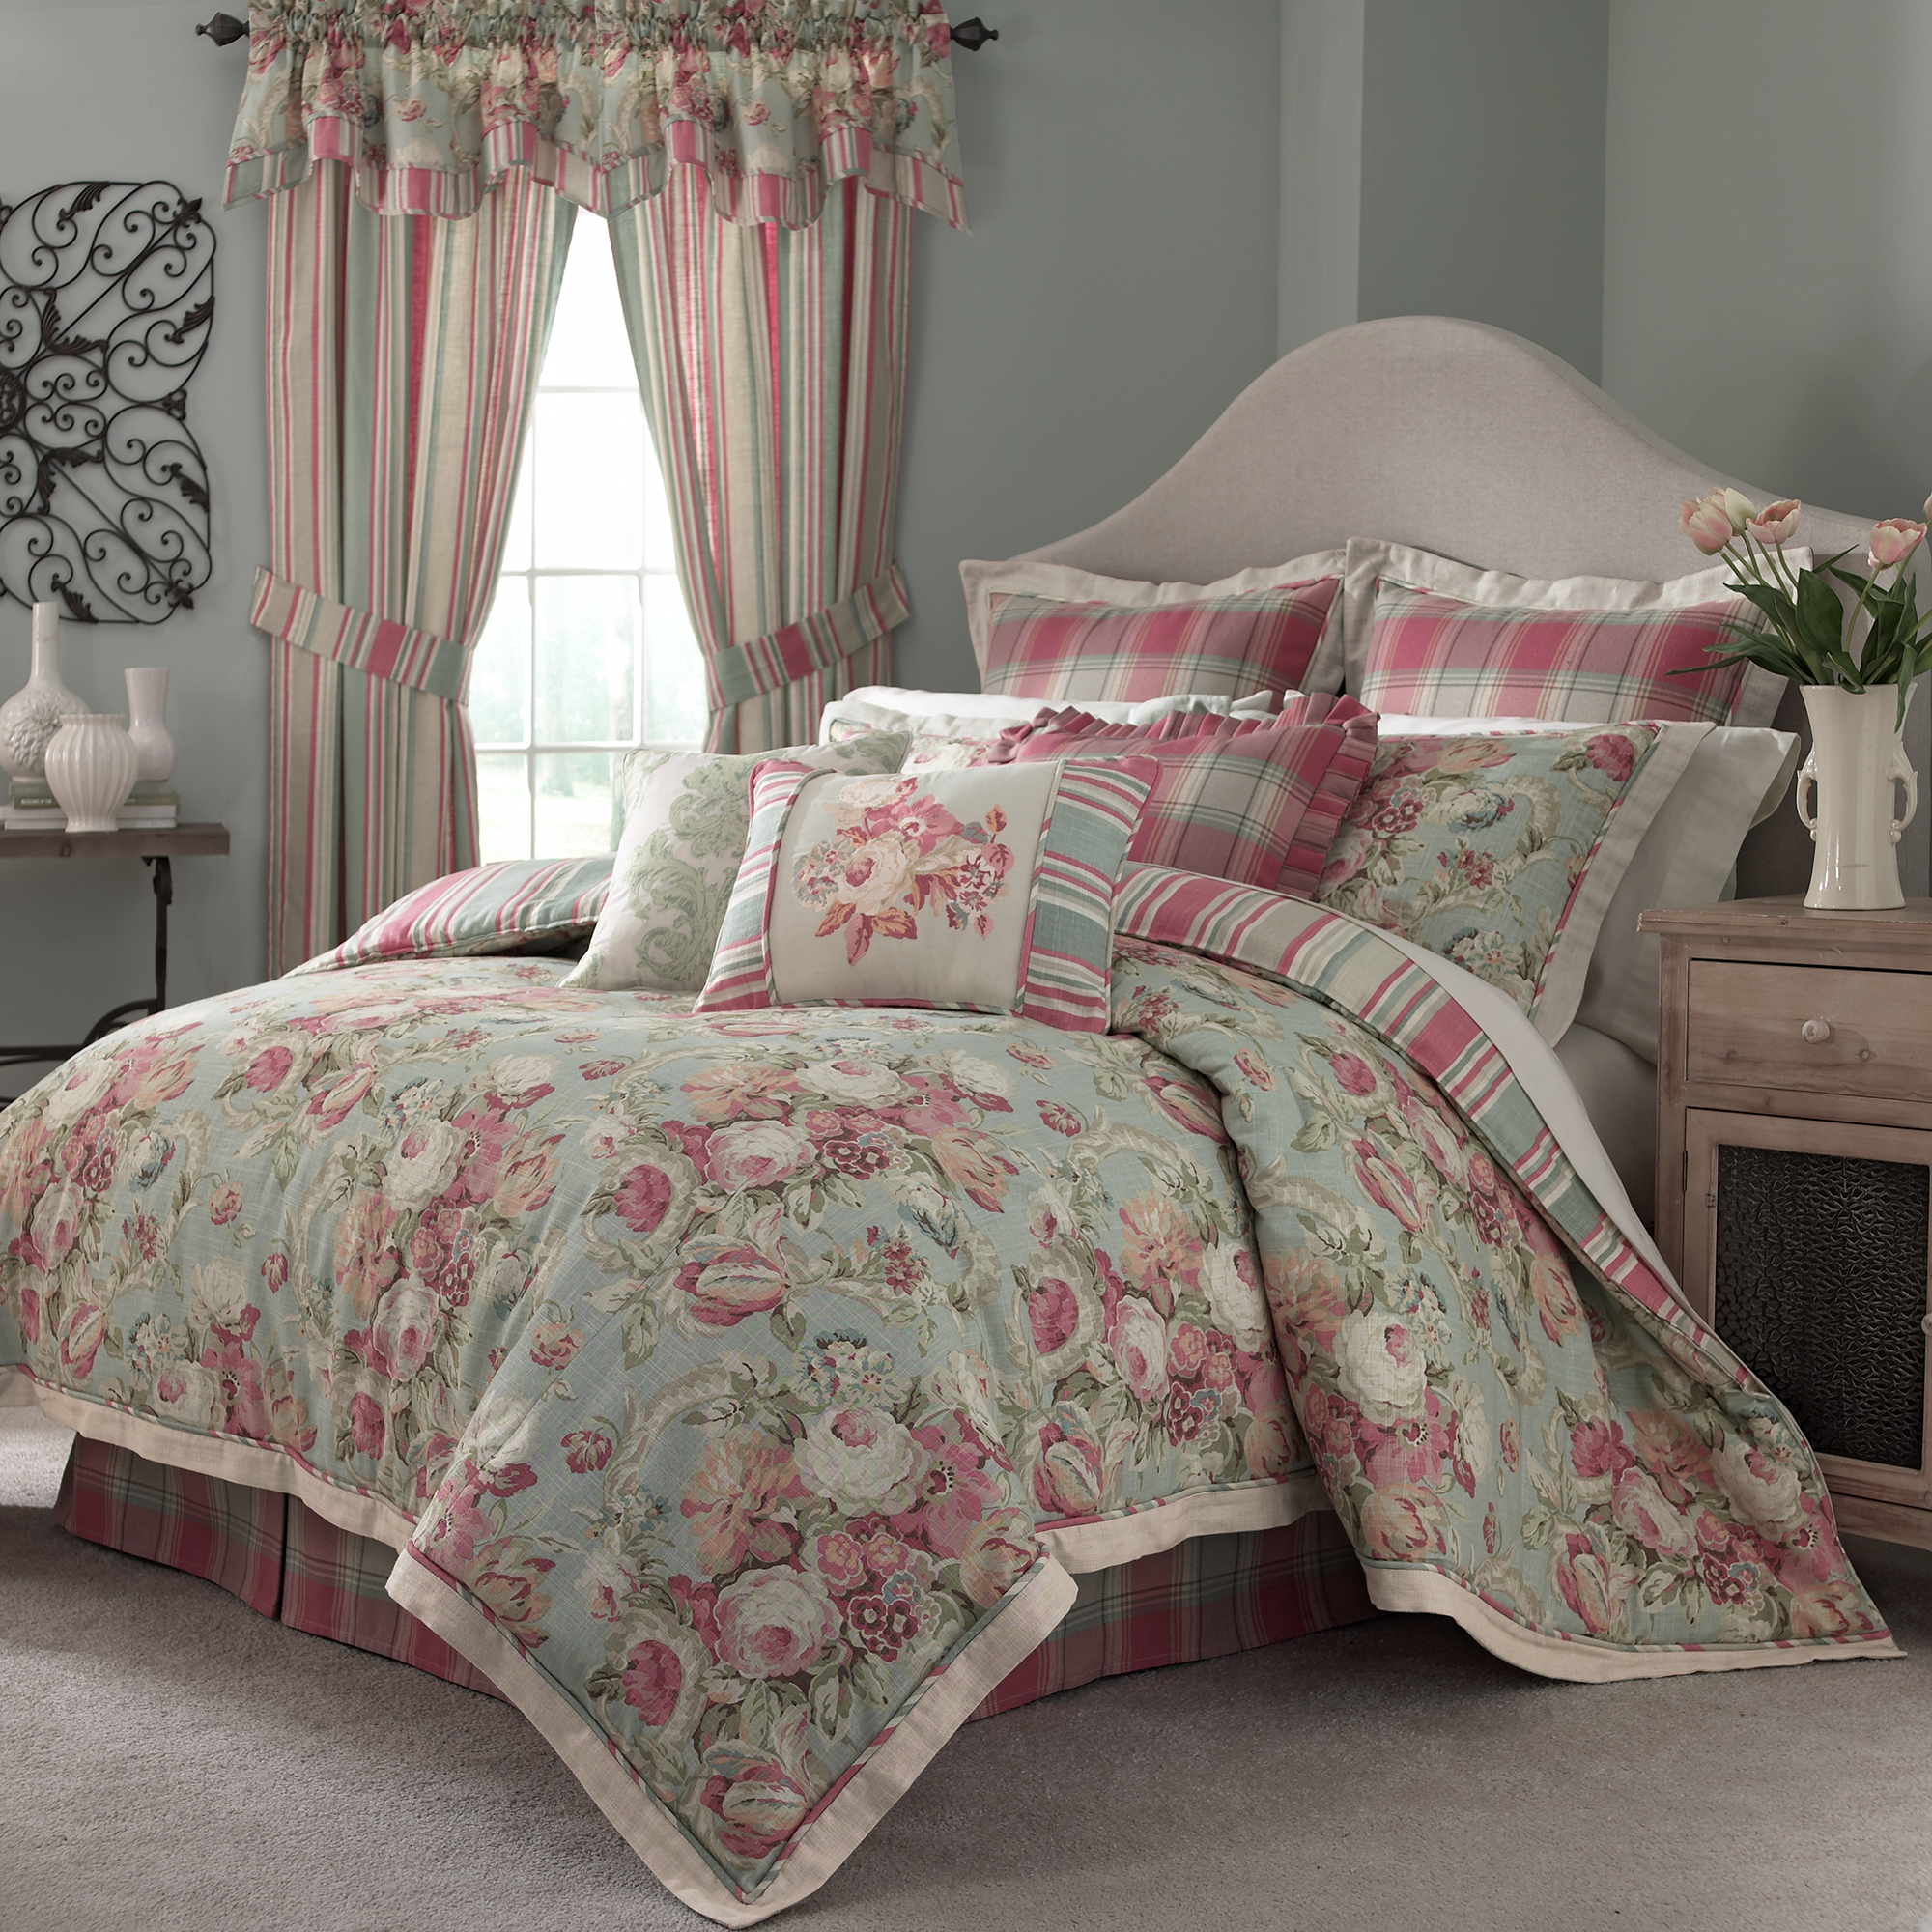 Bedding Decor: Ellery Homestyles Shares The Latest Bedding Trends